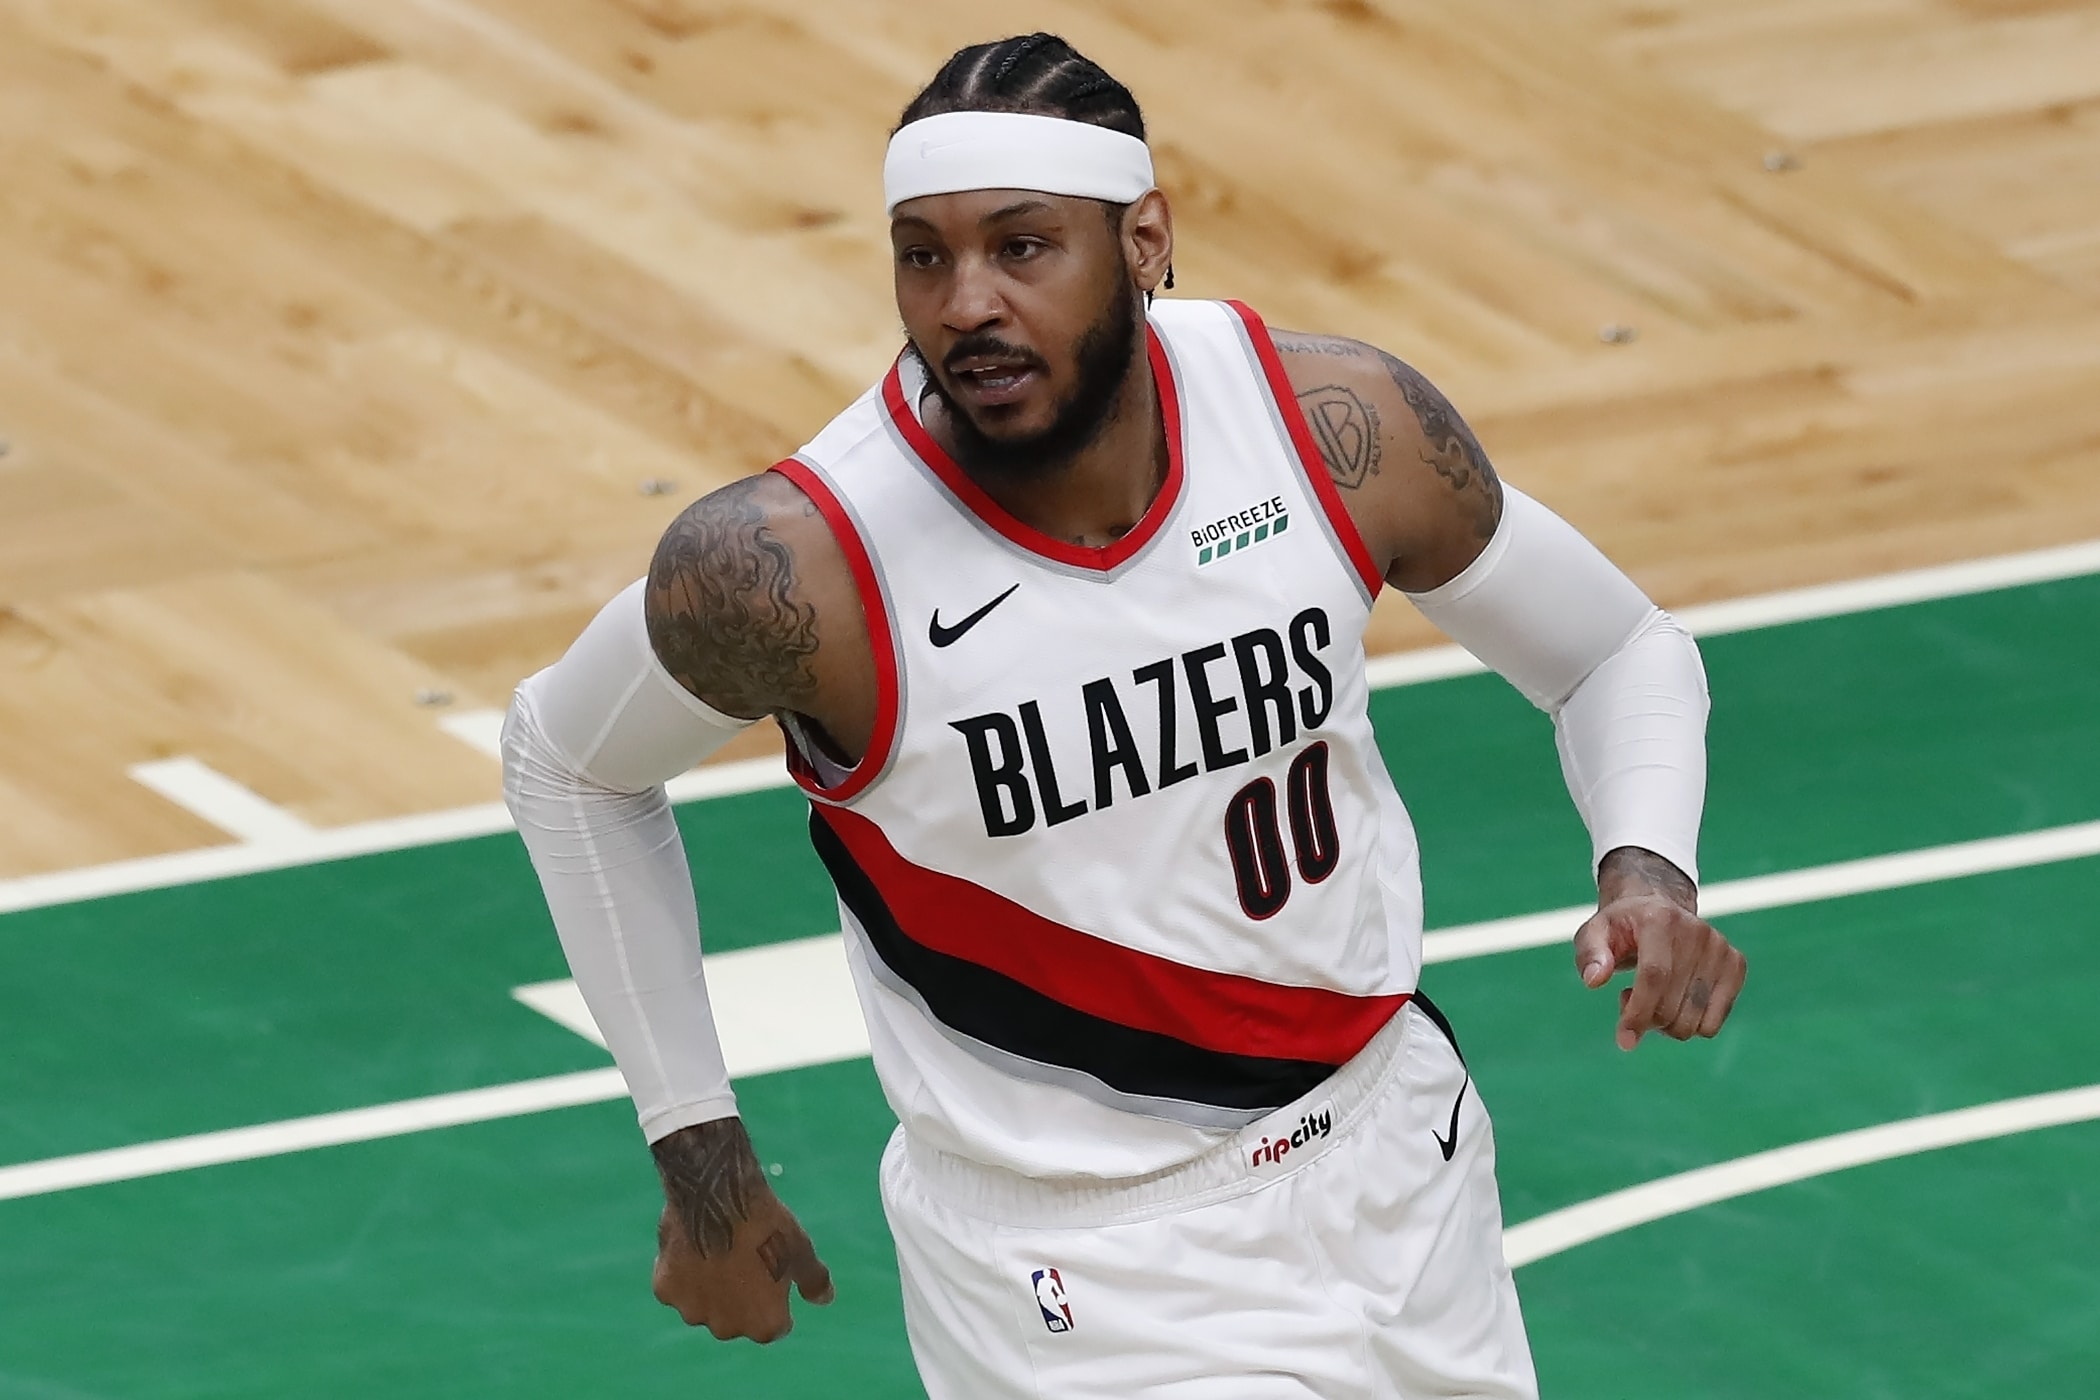 carmelo-anthony-rumors-knicks-be-aware-blazers-ufa-lakers-very-alive-to-in-contract.jpg